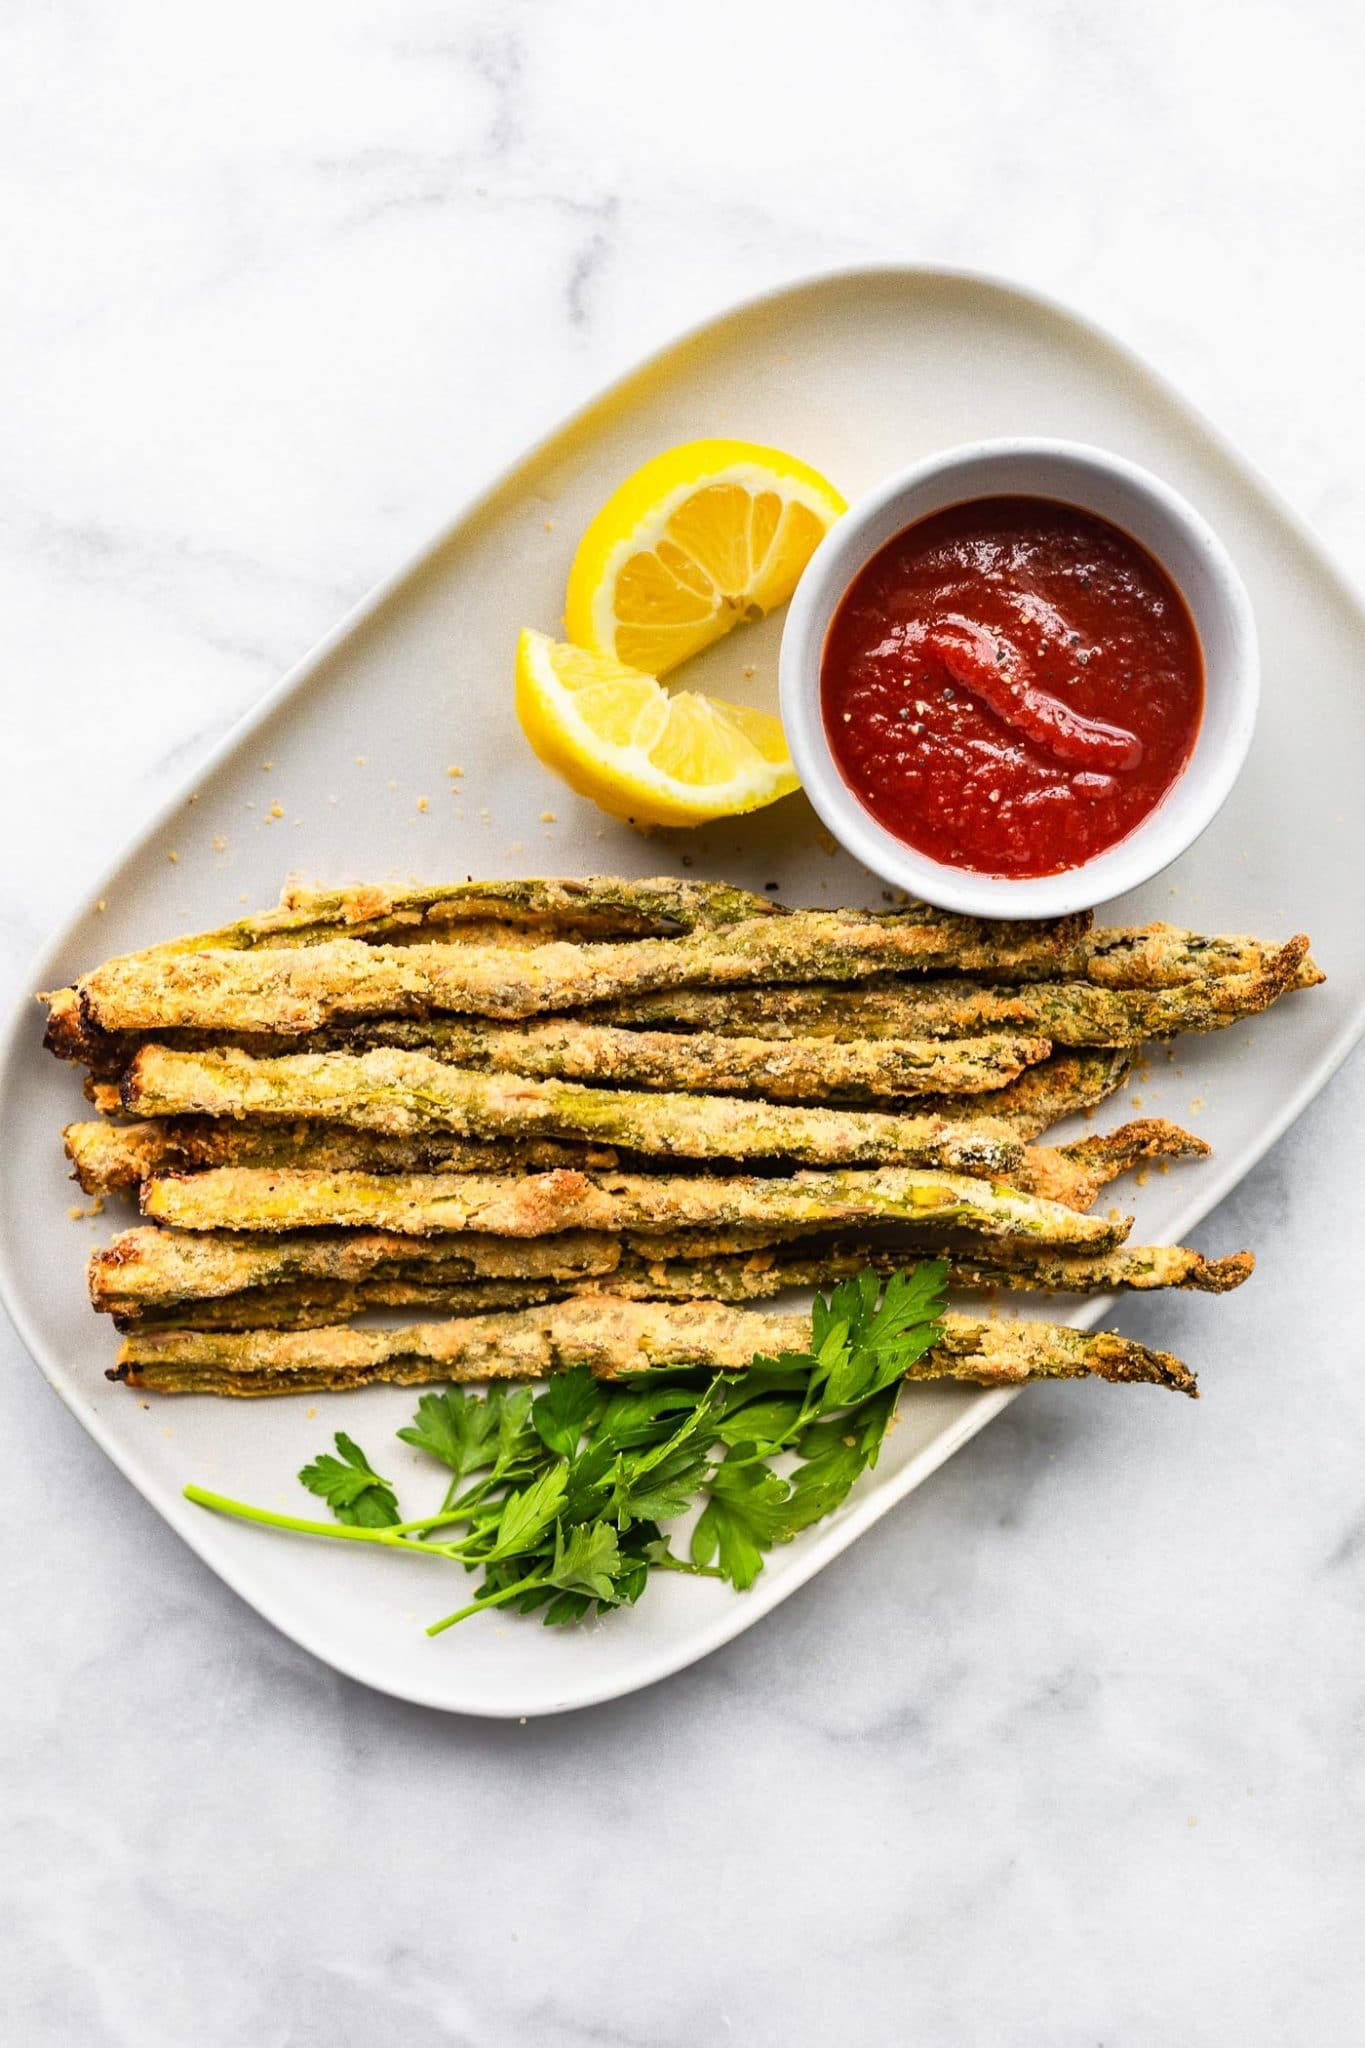 a serving platter of Air Fryer Asparagus Fries with ketchup and lemon wedges on the side